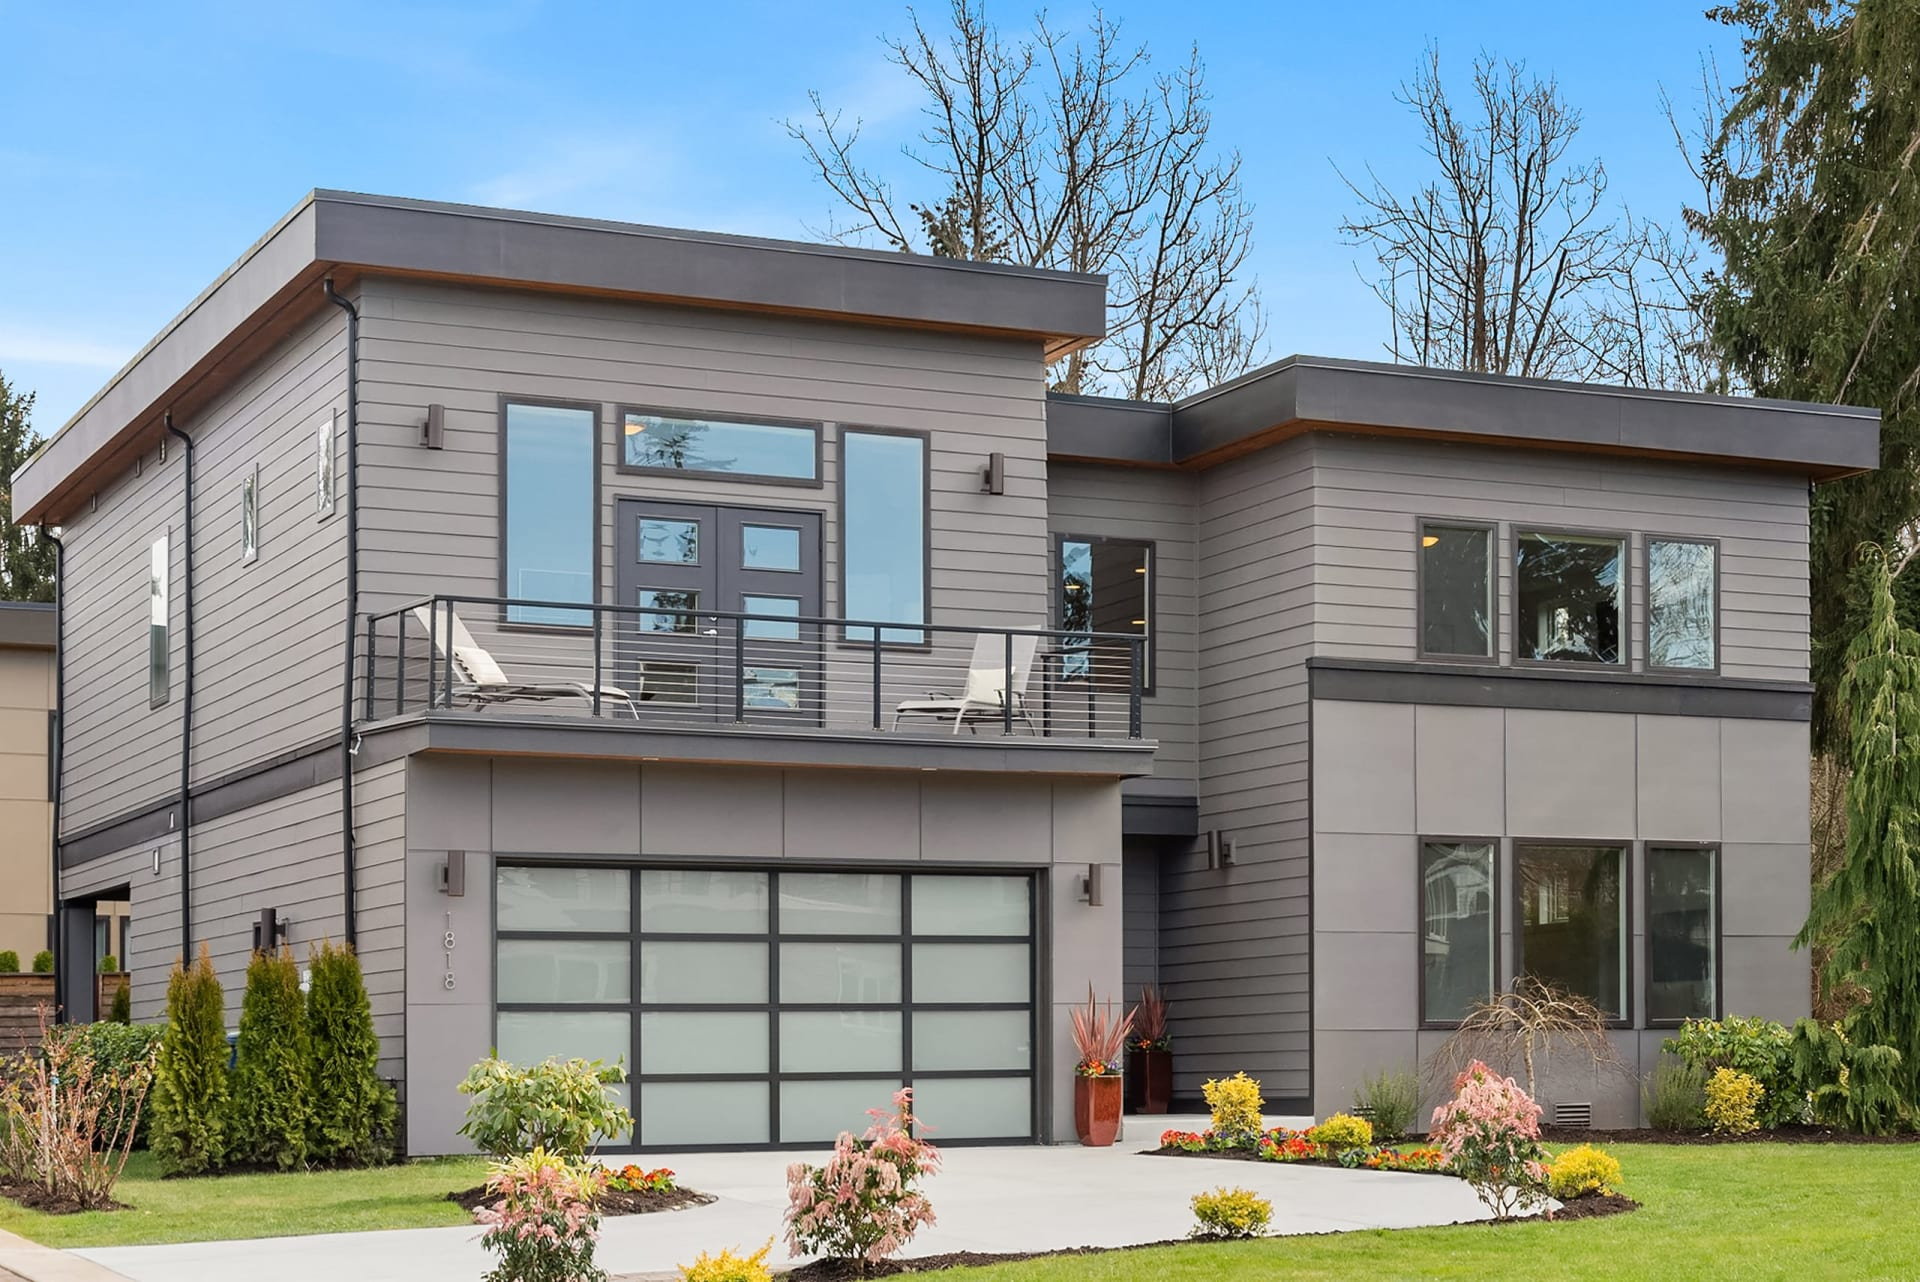 $2,198,000 / 1818 7th St W, Kirkland, 98033	 image